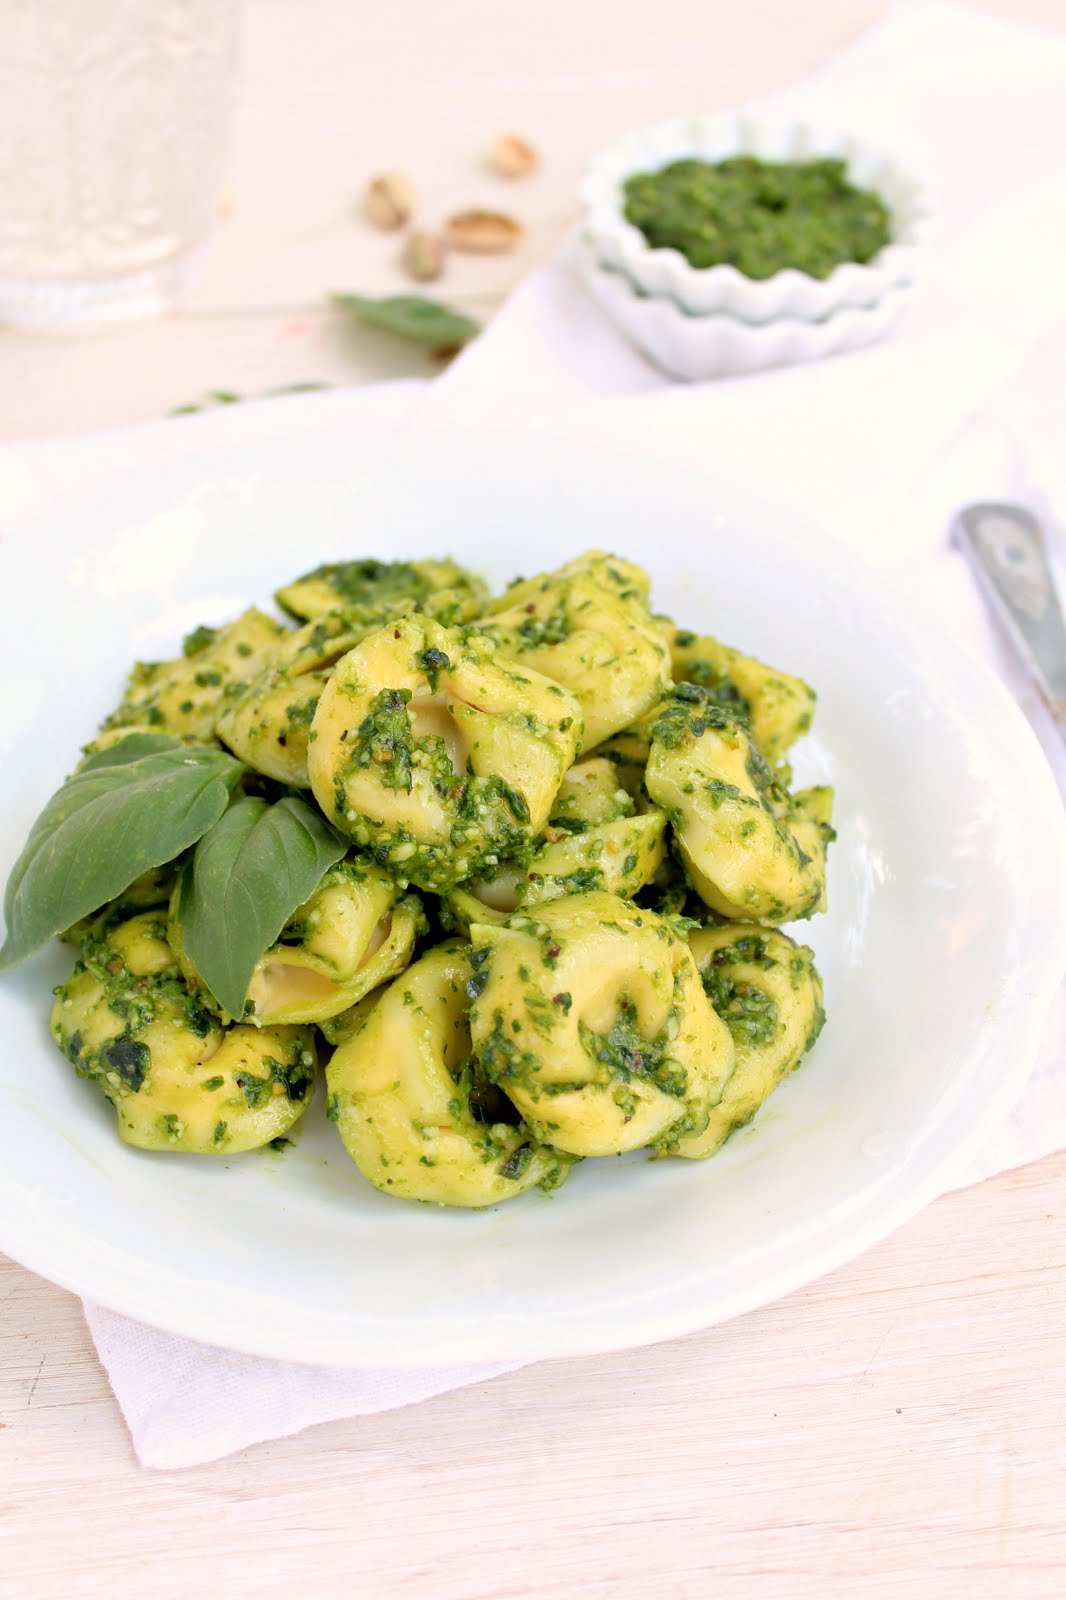 Spinach Feta Pesto Tortellini Salad: healthy, easy to make and super flavorful!